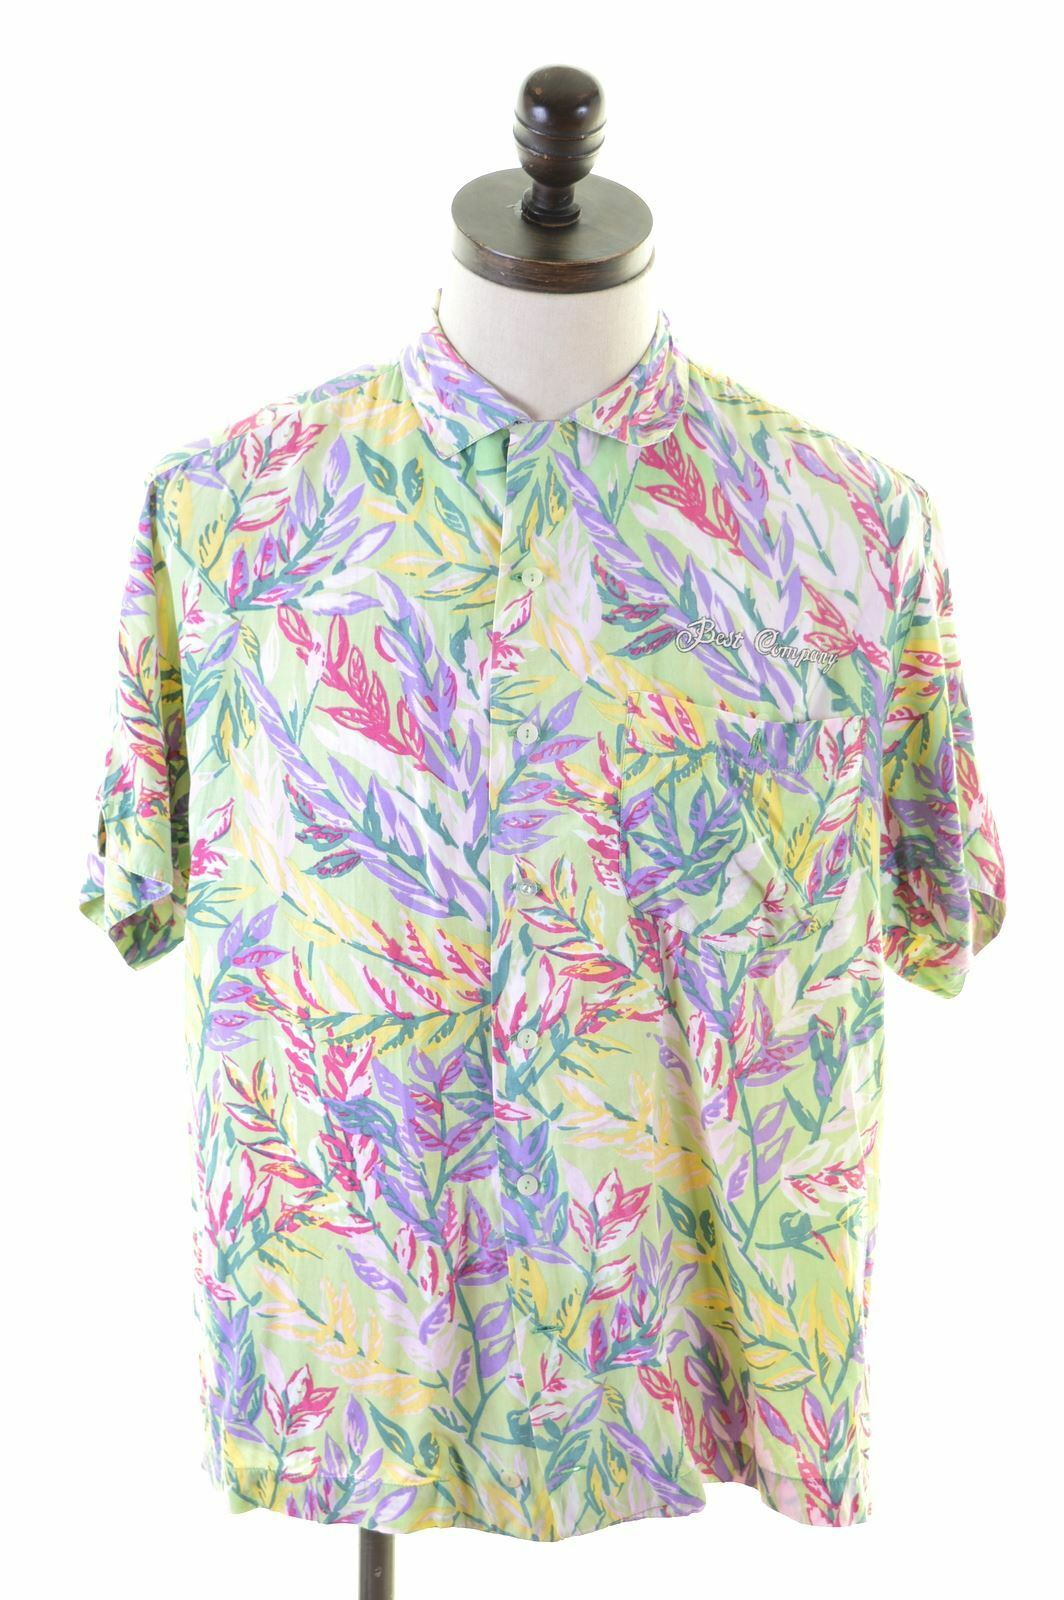 BEST COMPANY Mens Shirt Medium Multi Floral Loose Fit  IB19